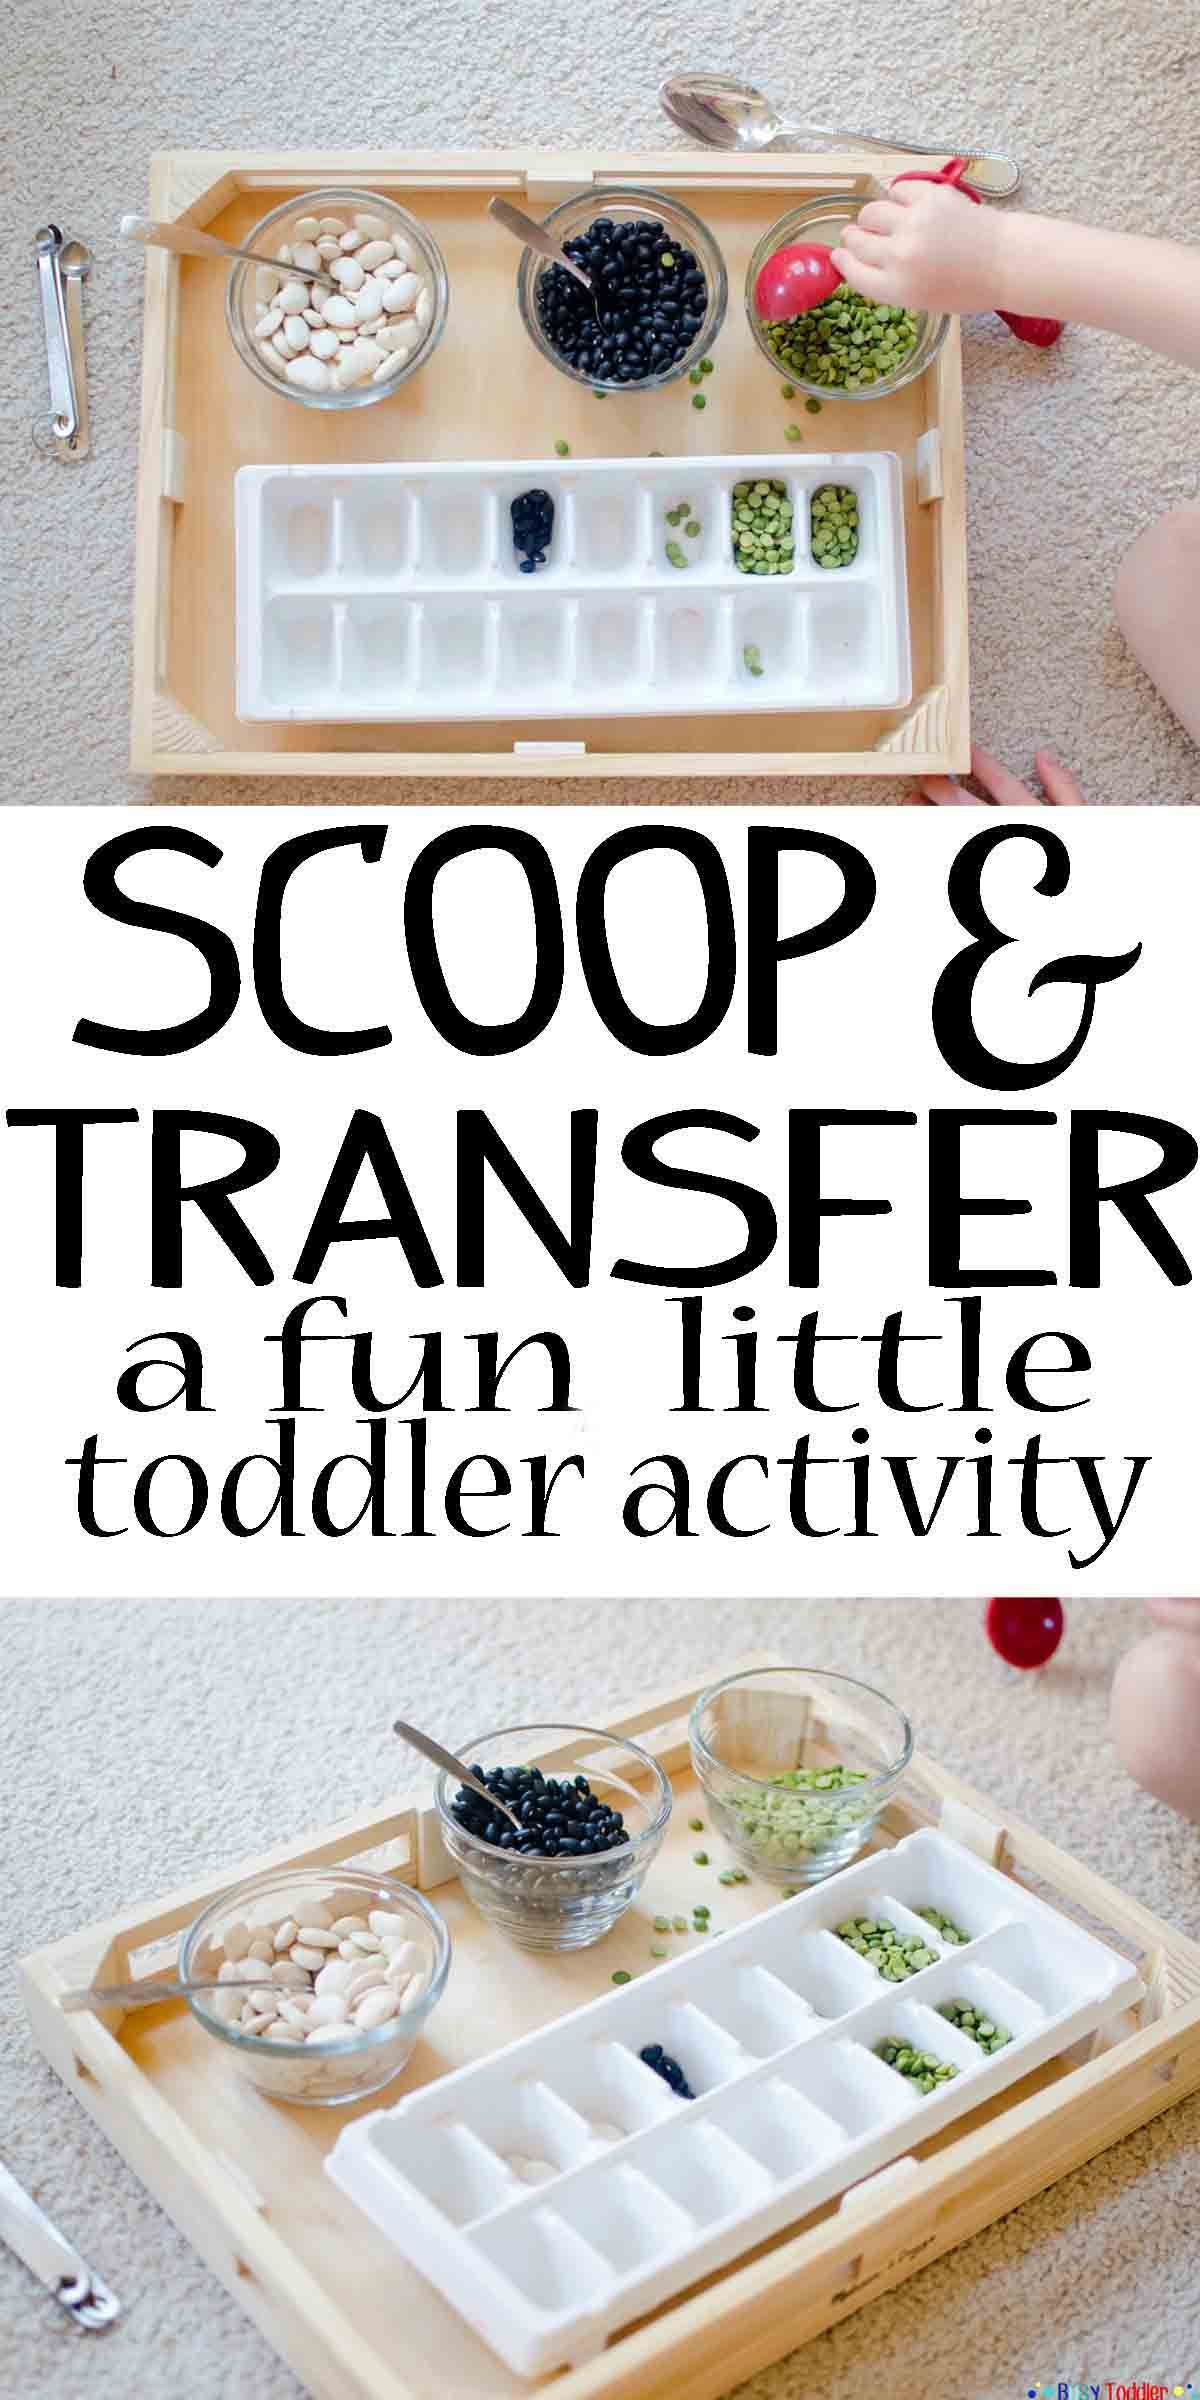 Scoop and Transfer | Toddler Activities | Pinterest | Activities ...